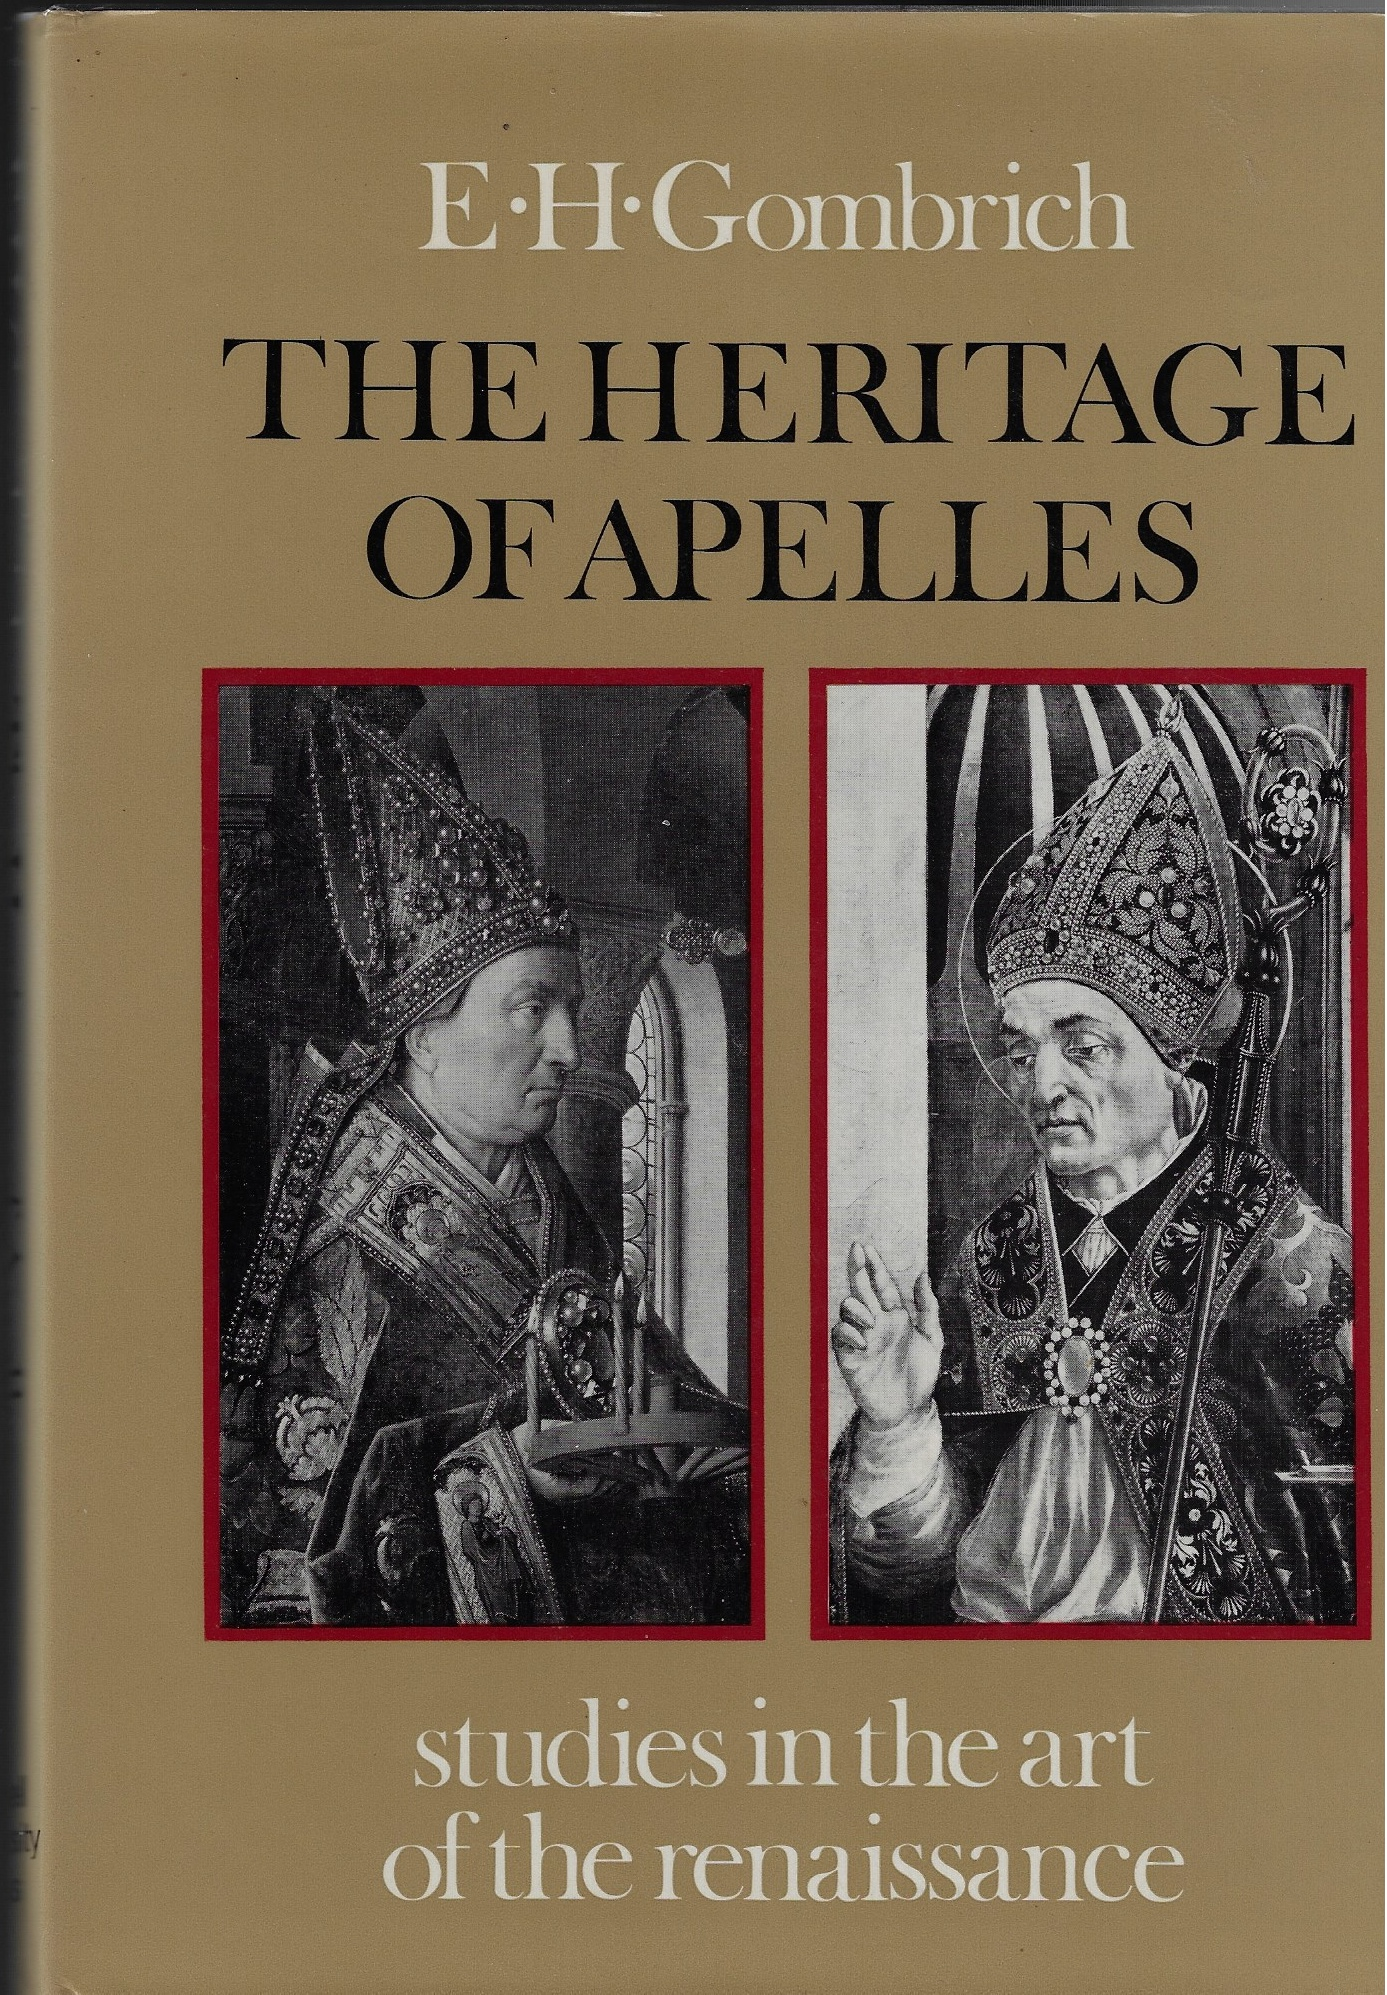 Image for The Heritage of Apelles. Studies in the Art of the Renaissance.